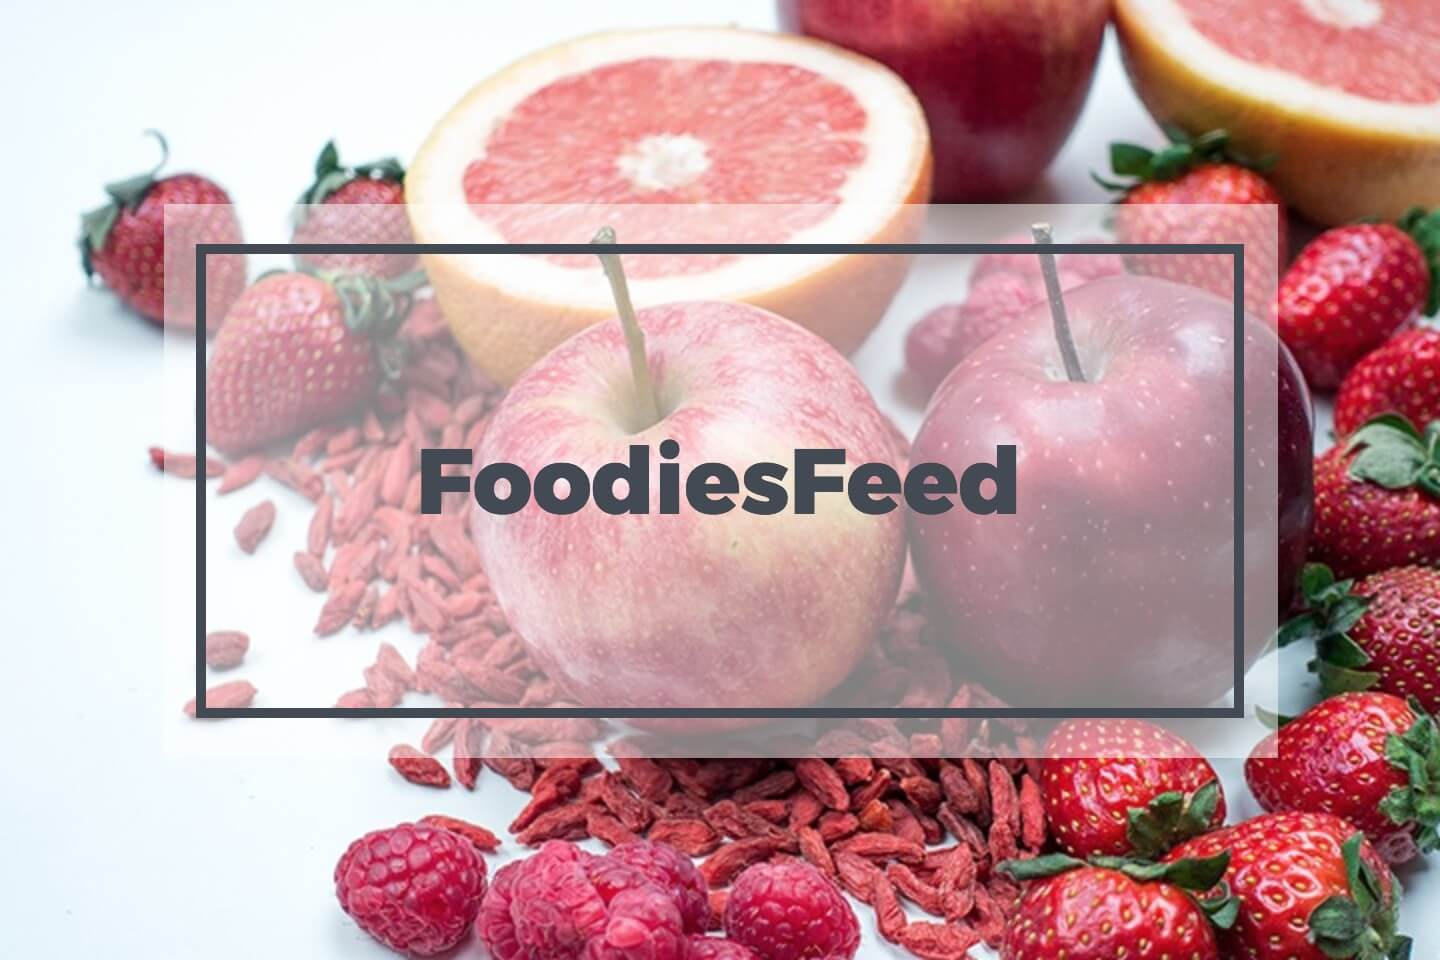 Foodies feed free stock photos